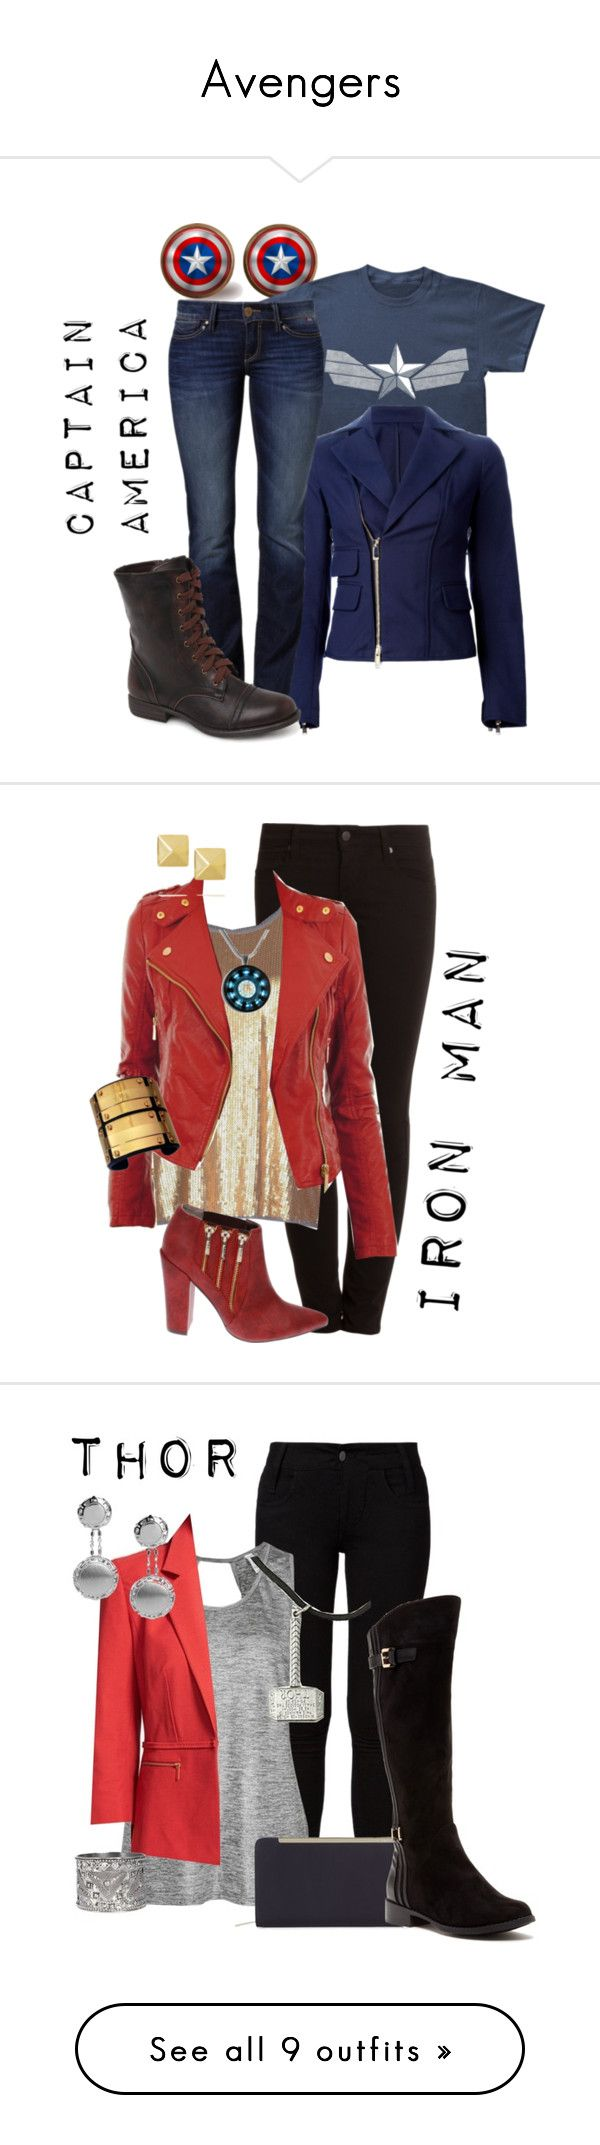 """Avengers"" by sharedpieceofcake ❤ liked on Polyvore"